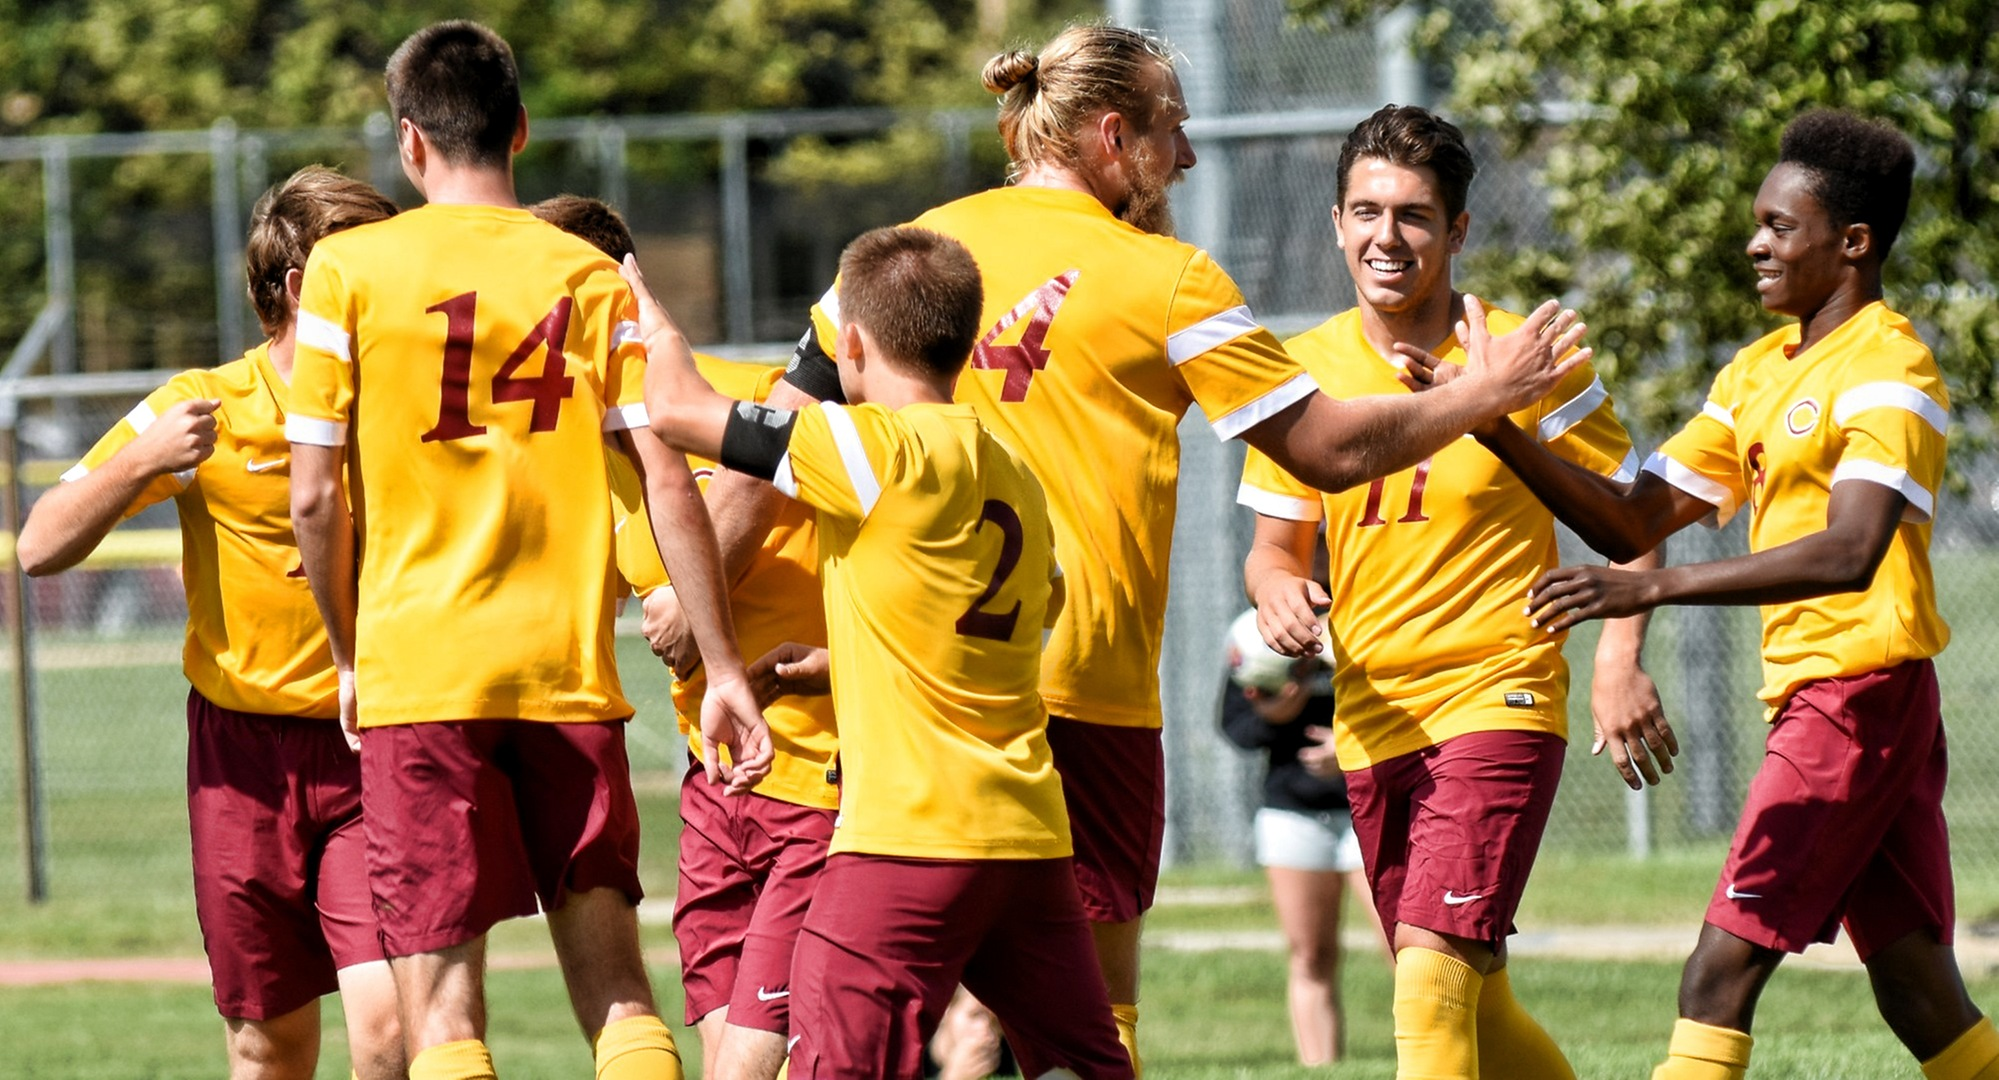 Concordia earned its second win of the weekend with a 2-1 2OT victory over St. John's.